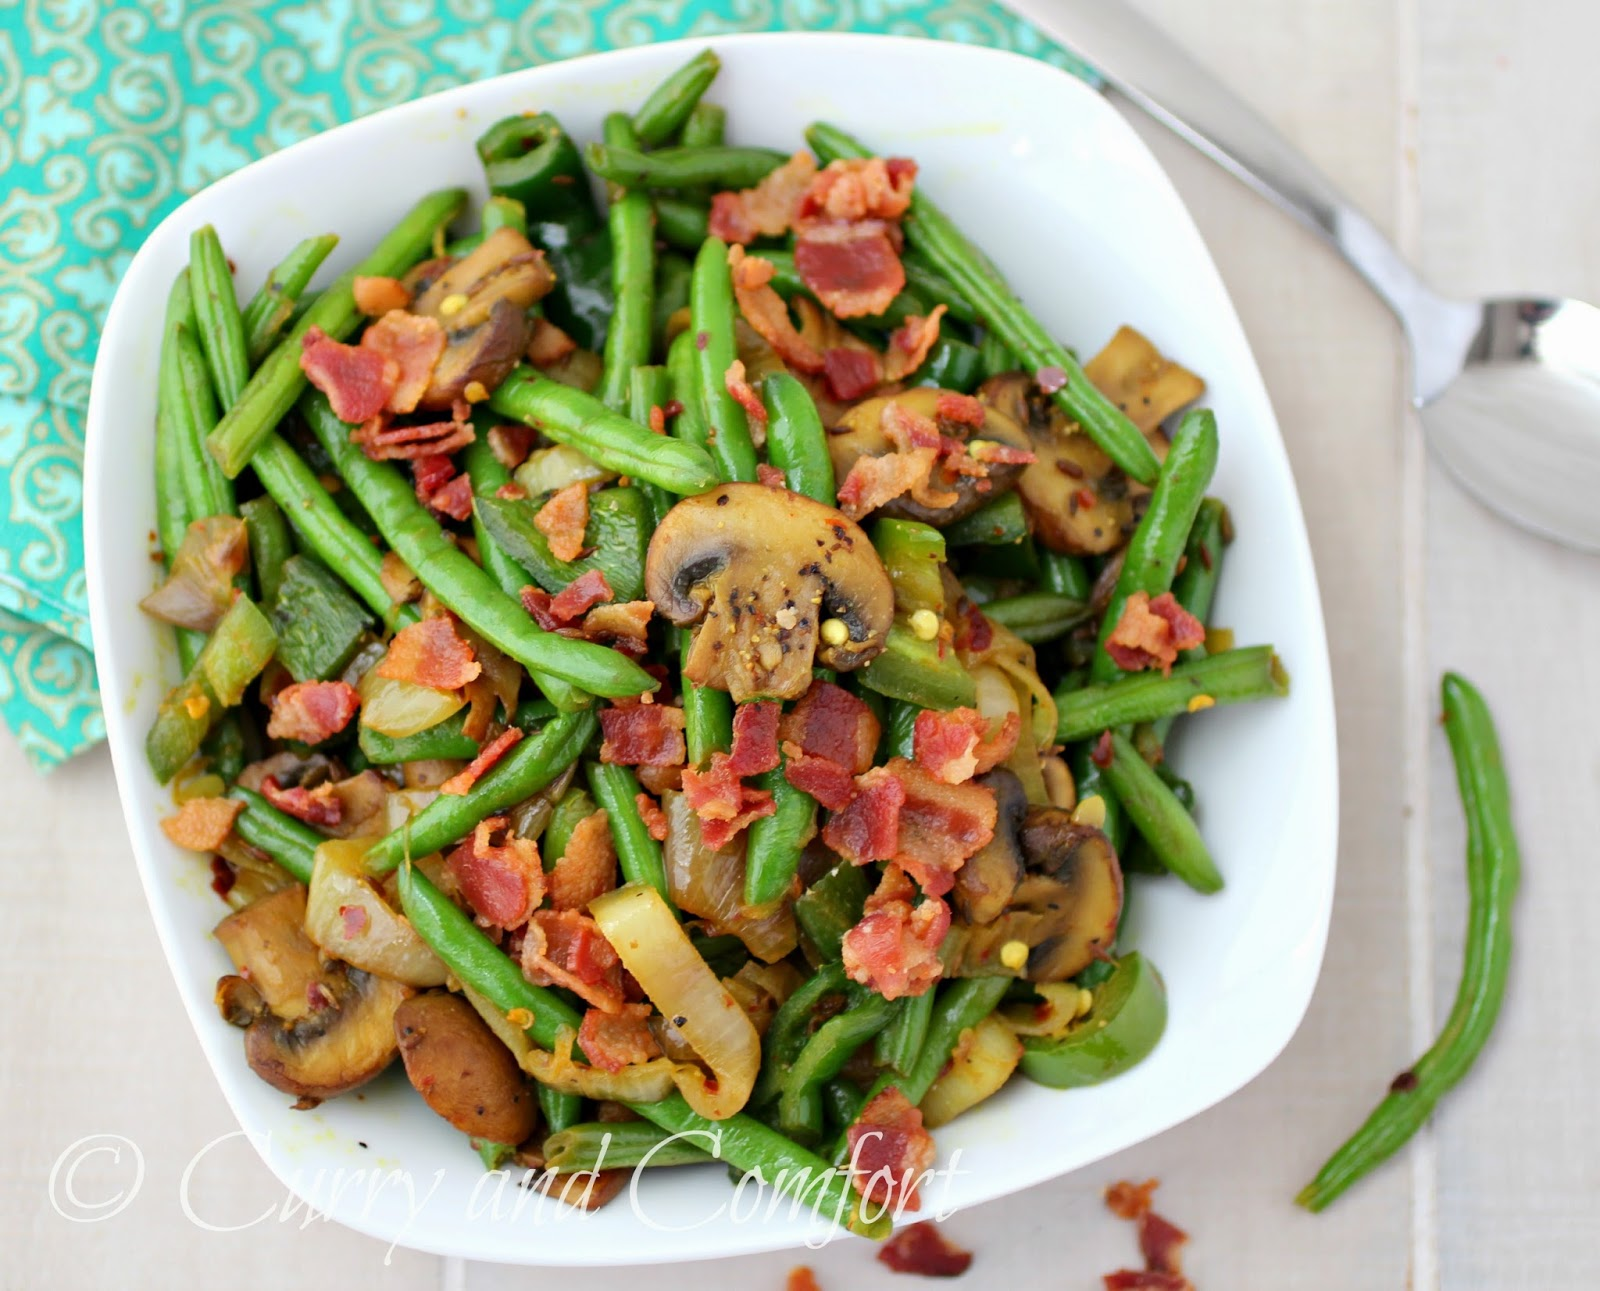 Kitchen Simmer: Green Beans with Bacon and Mushrooms